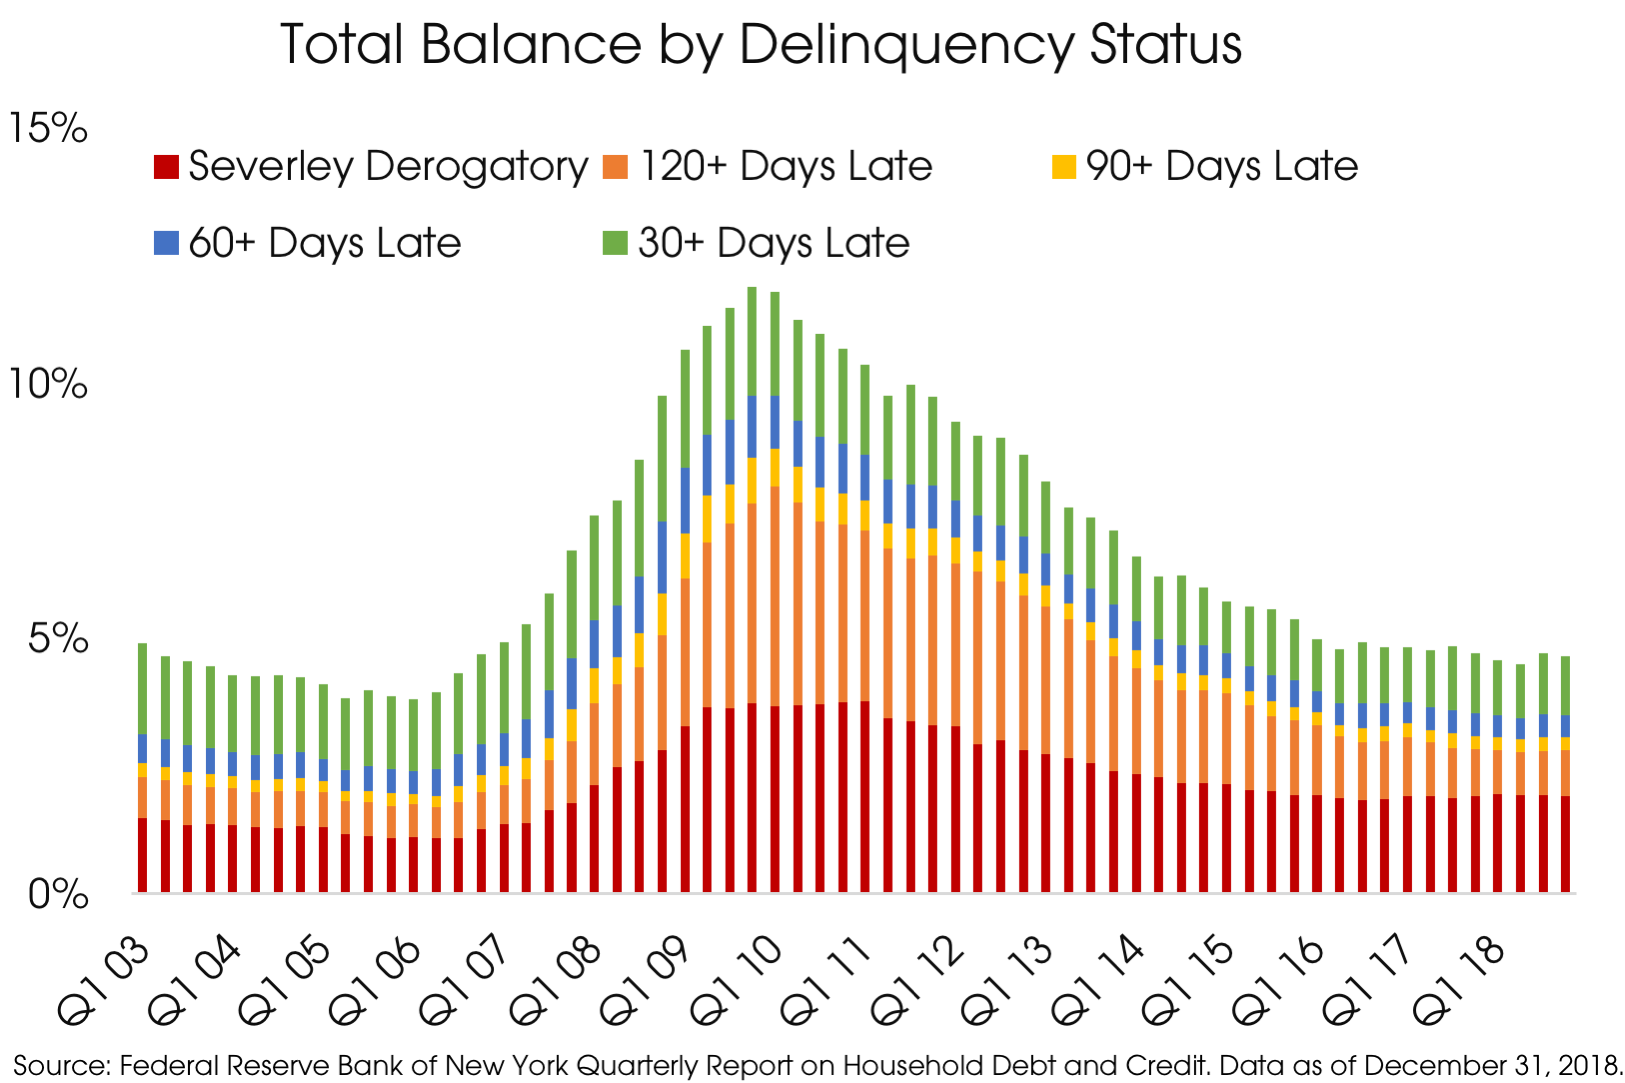 04152019_Delinquency Status.png